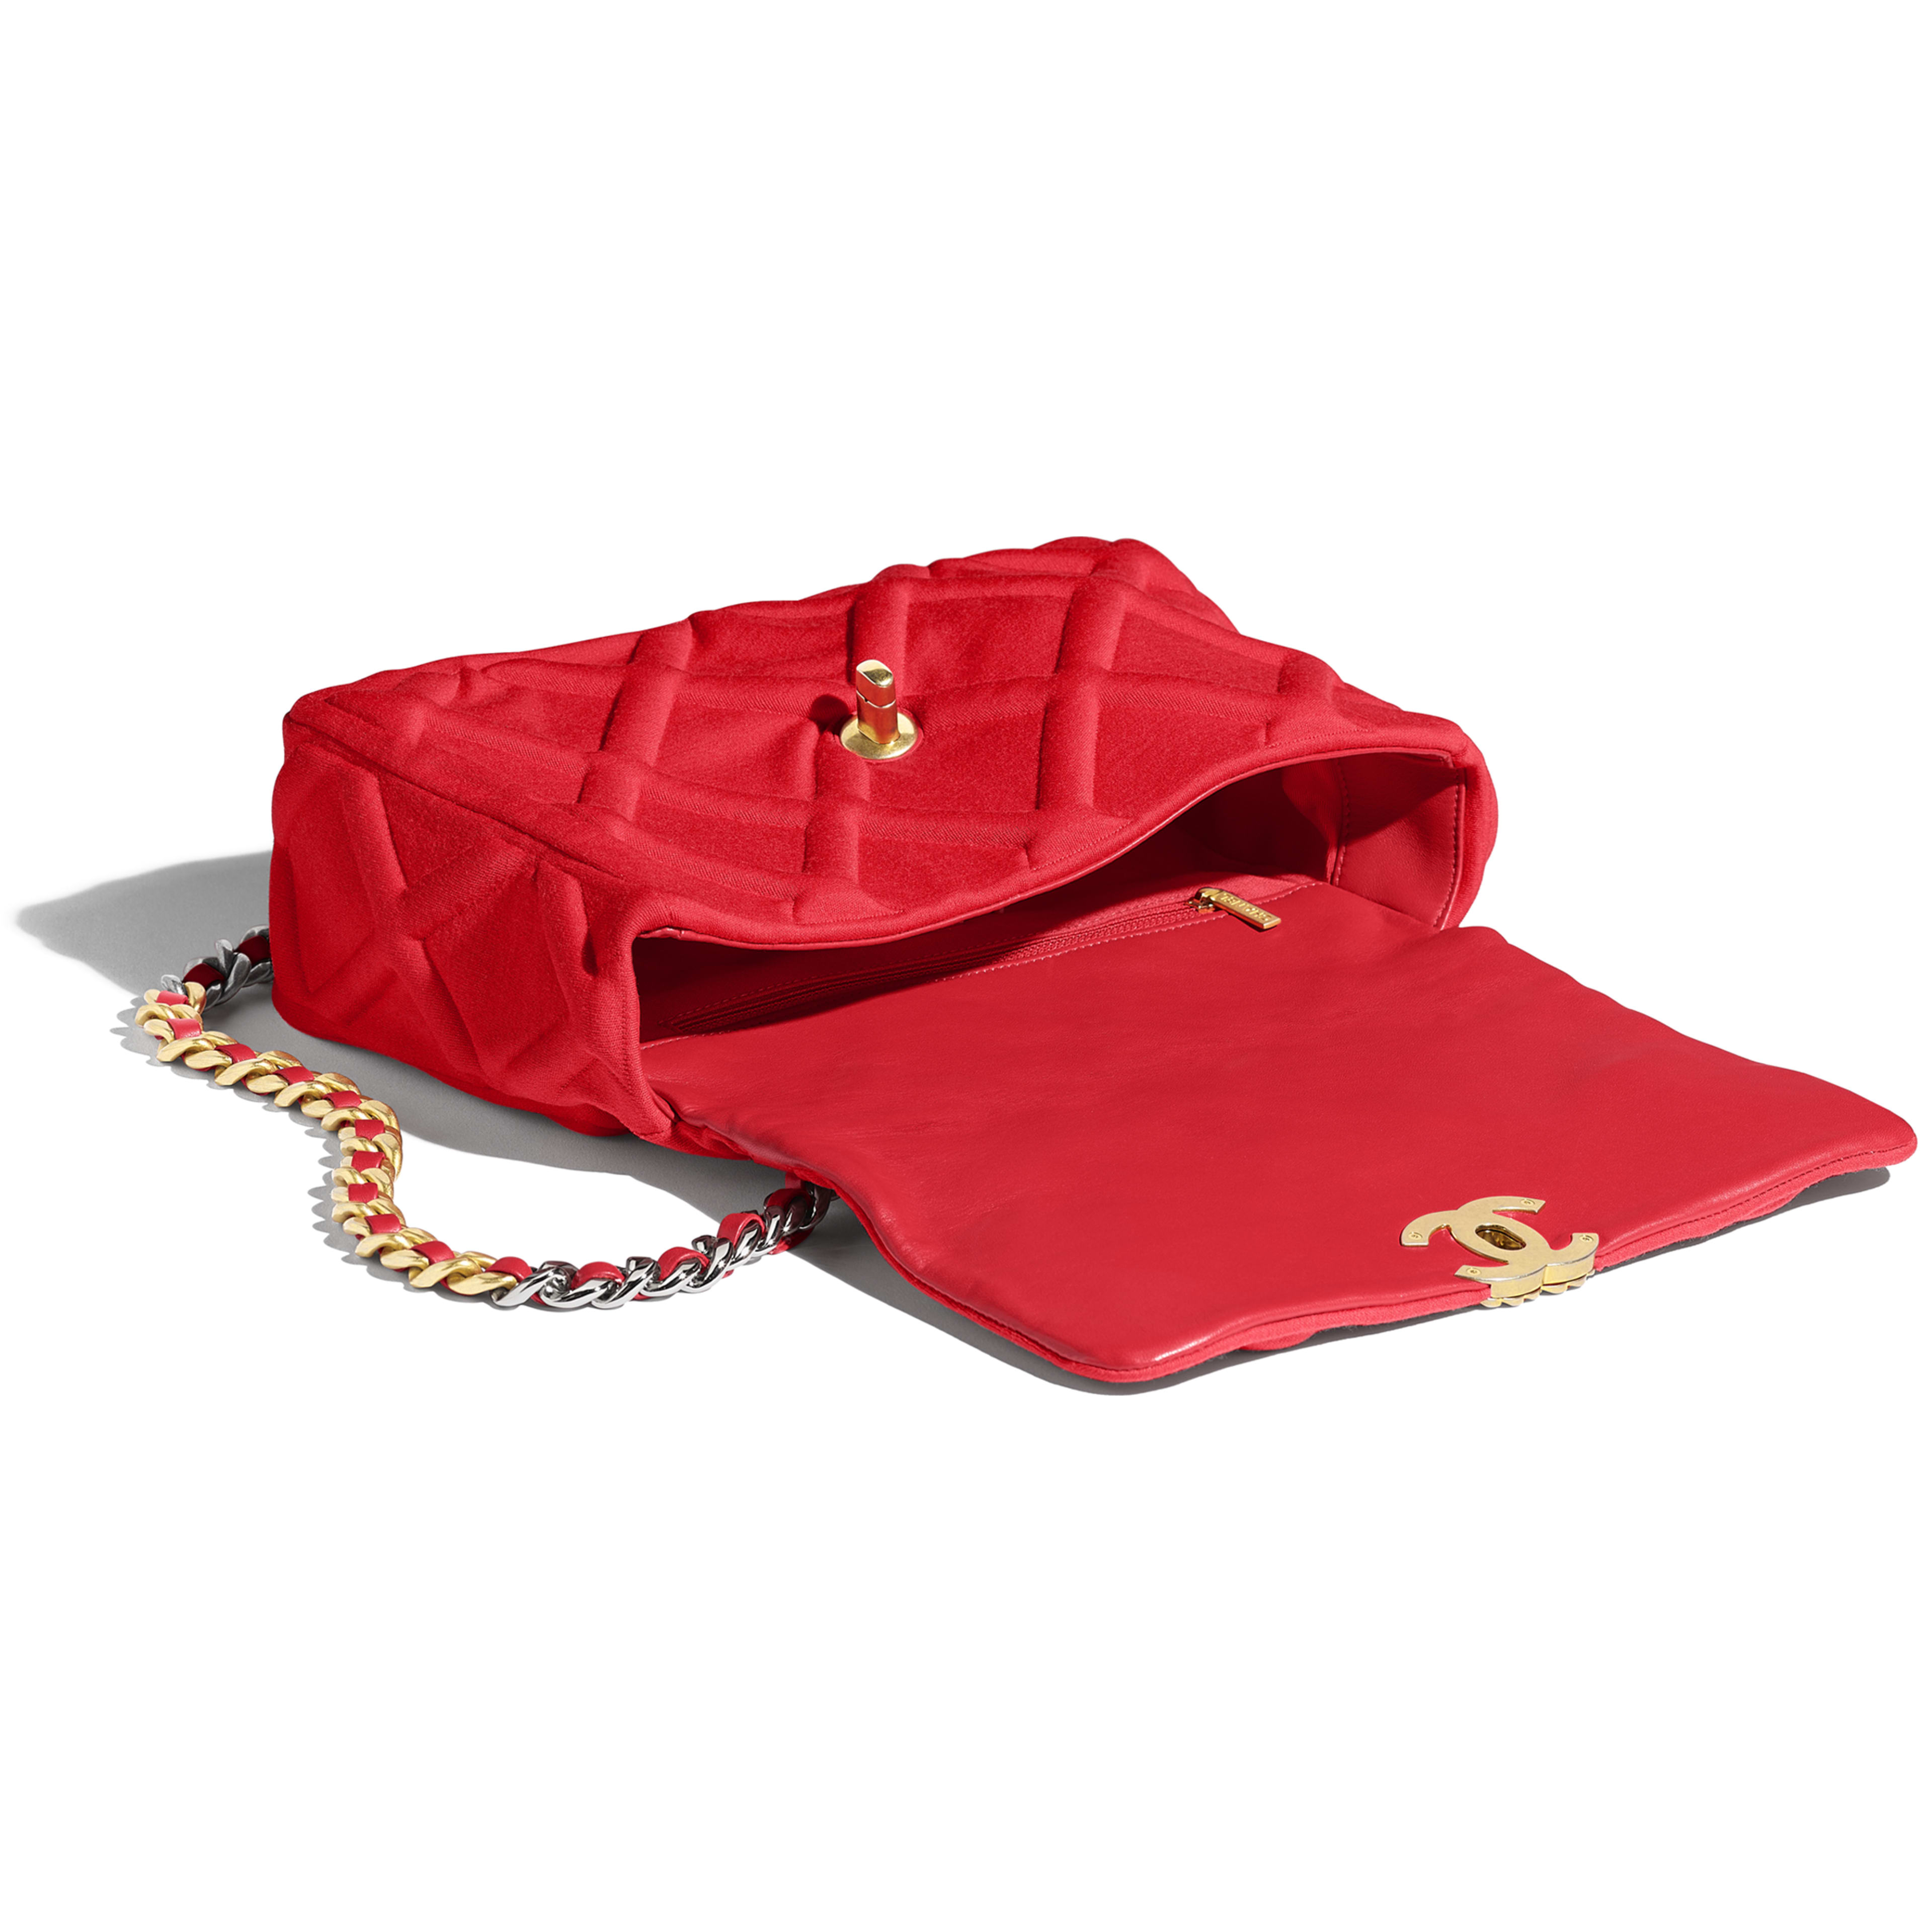 CHANEL 19 Large Flap Bag - Red - Jersey, Gold-Tone, Silver-Tone & Ruthenium-Finish Metal - Other view - see full sized version